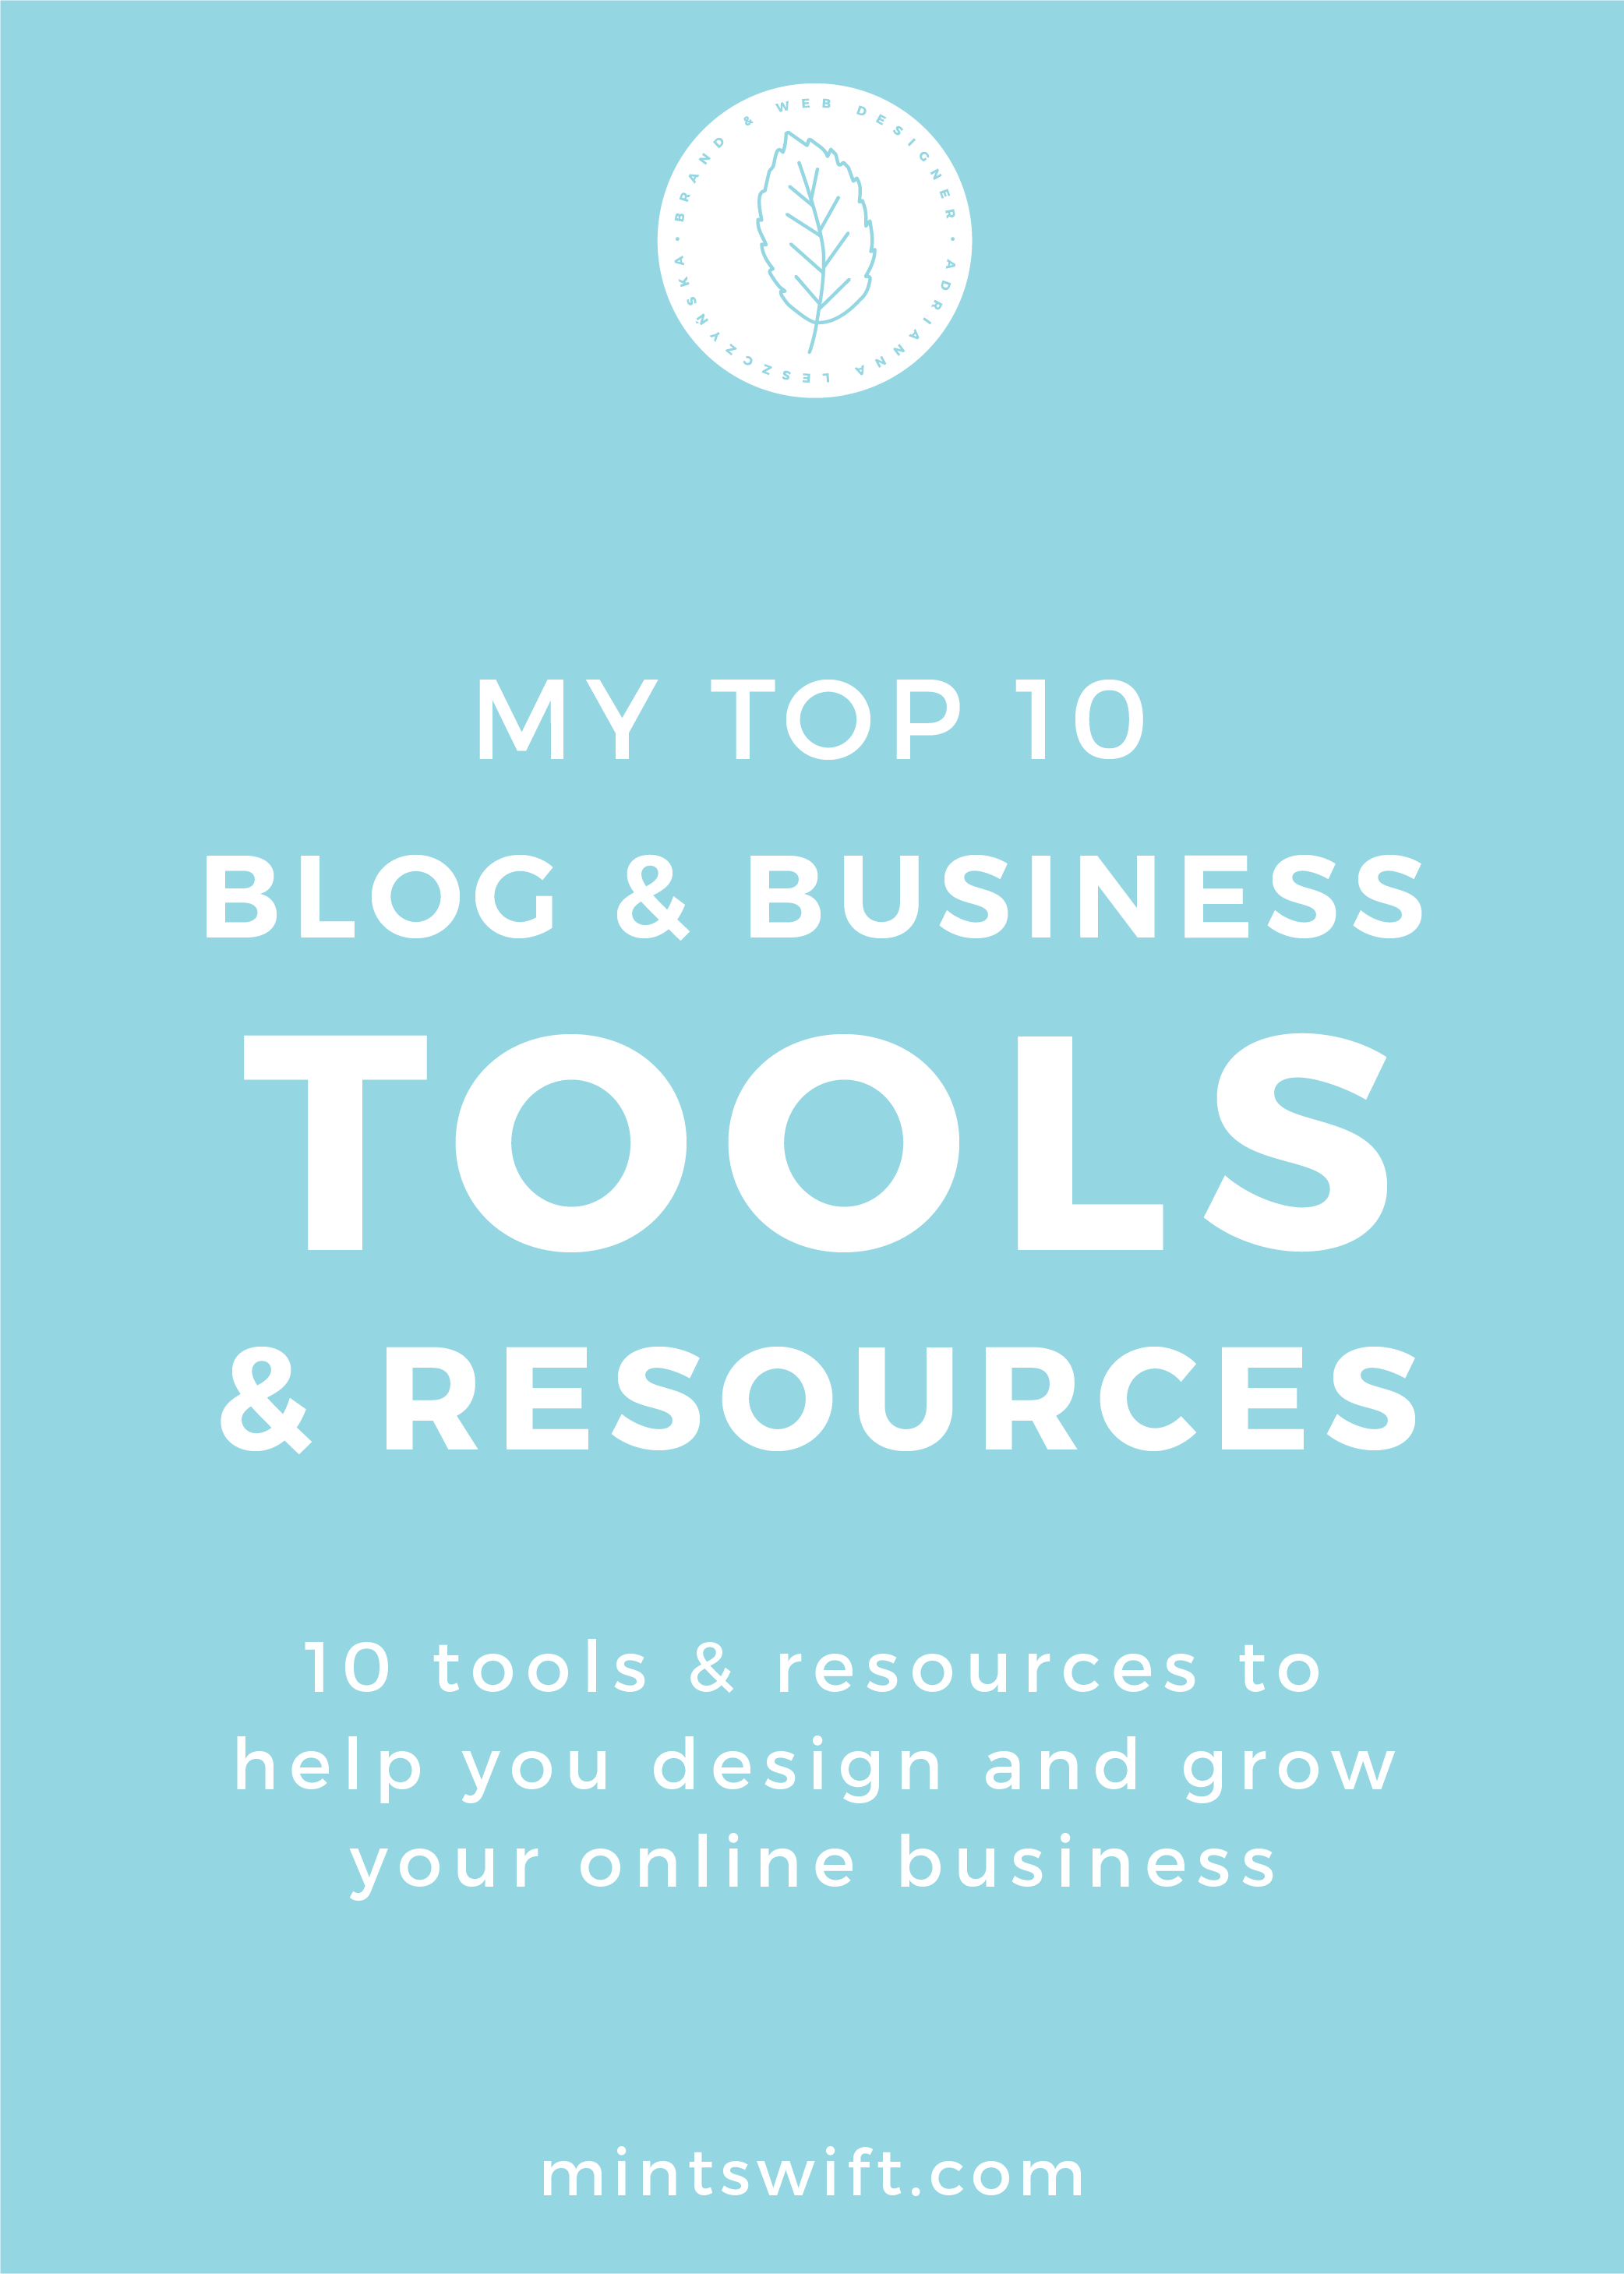 My Top 10 Blog & Business Tools & Resources. 10 Tools & Resources to Help You Design and Grow Your Online Business - MintSwift